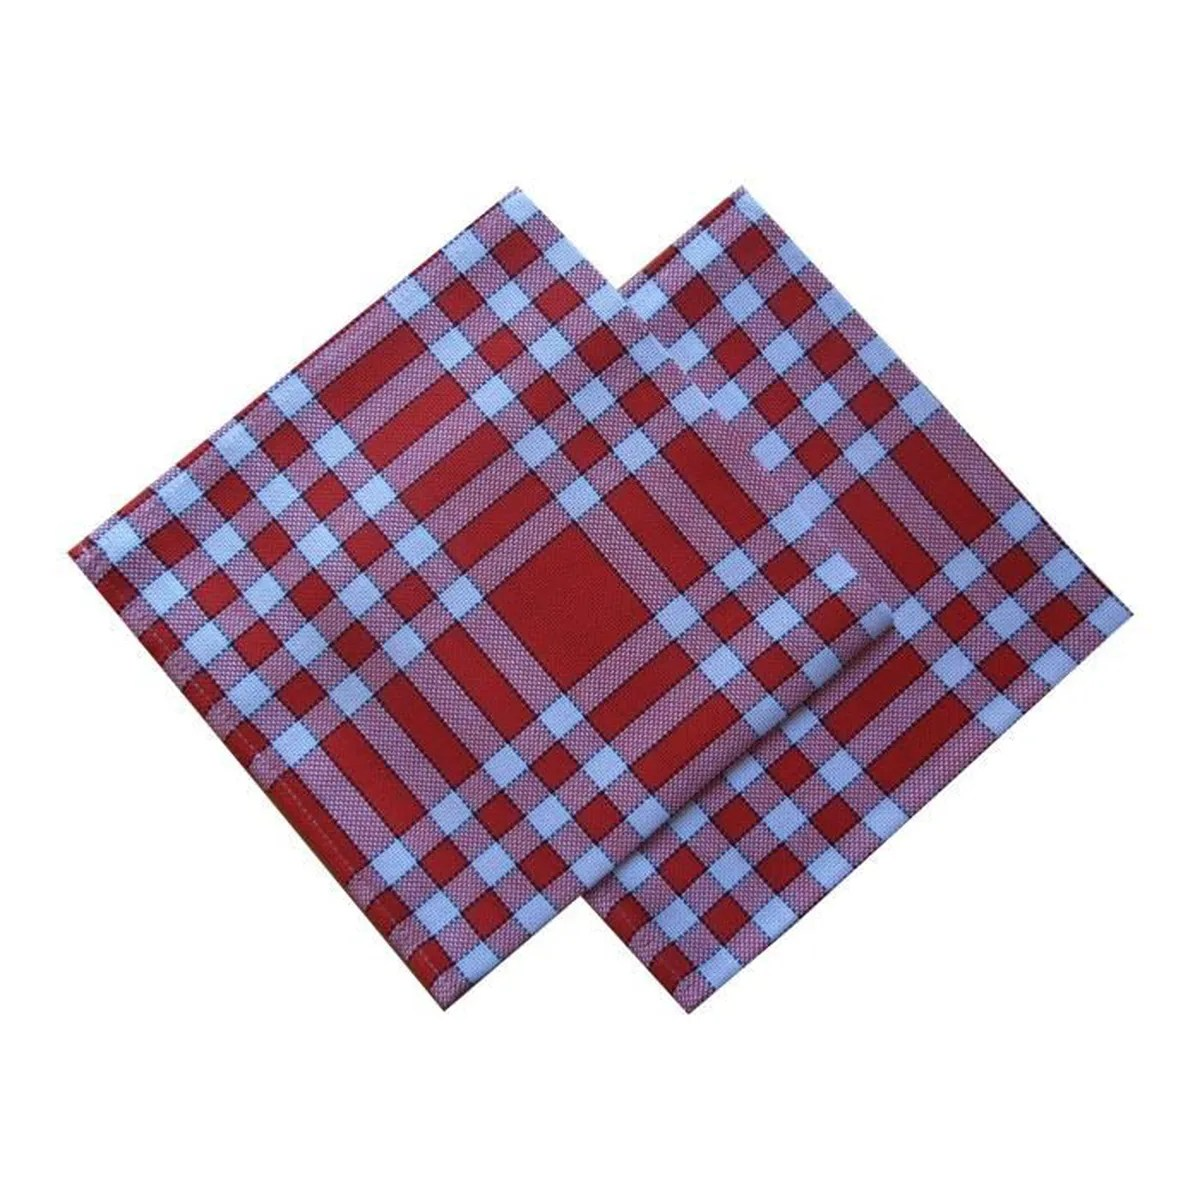 Serviette Table Lot De 2 Serviettes De Table Carreaux Normands Rouge